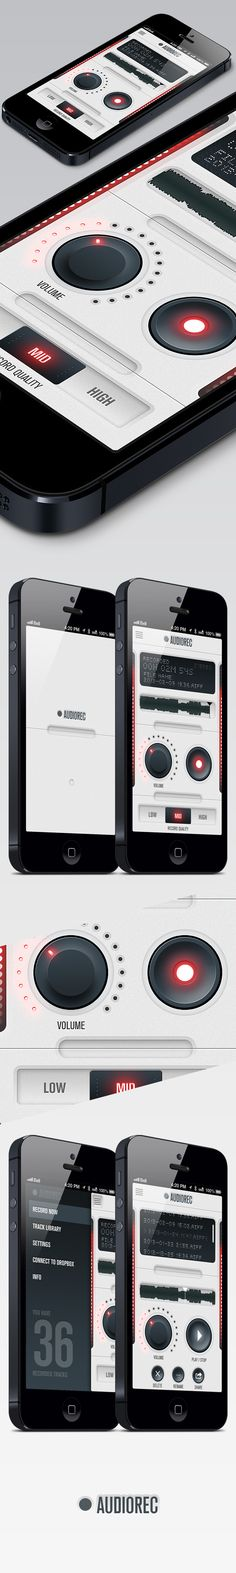 AudioRec UI App Concept by Miguel Pires, on Behance